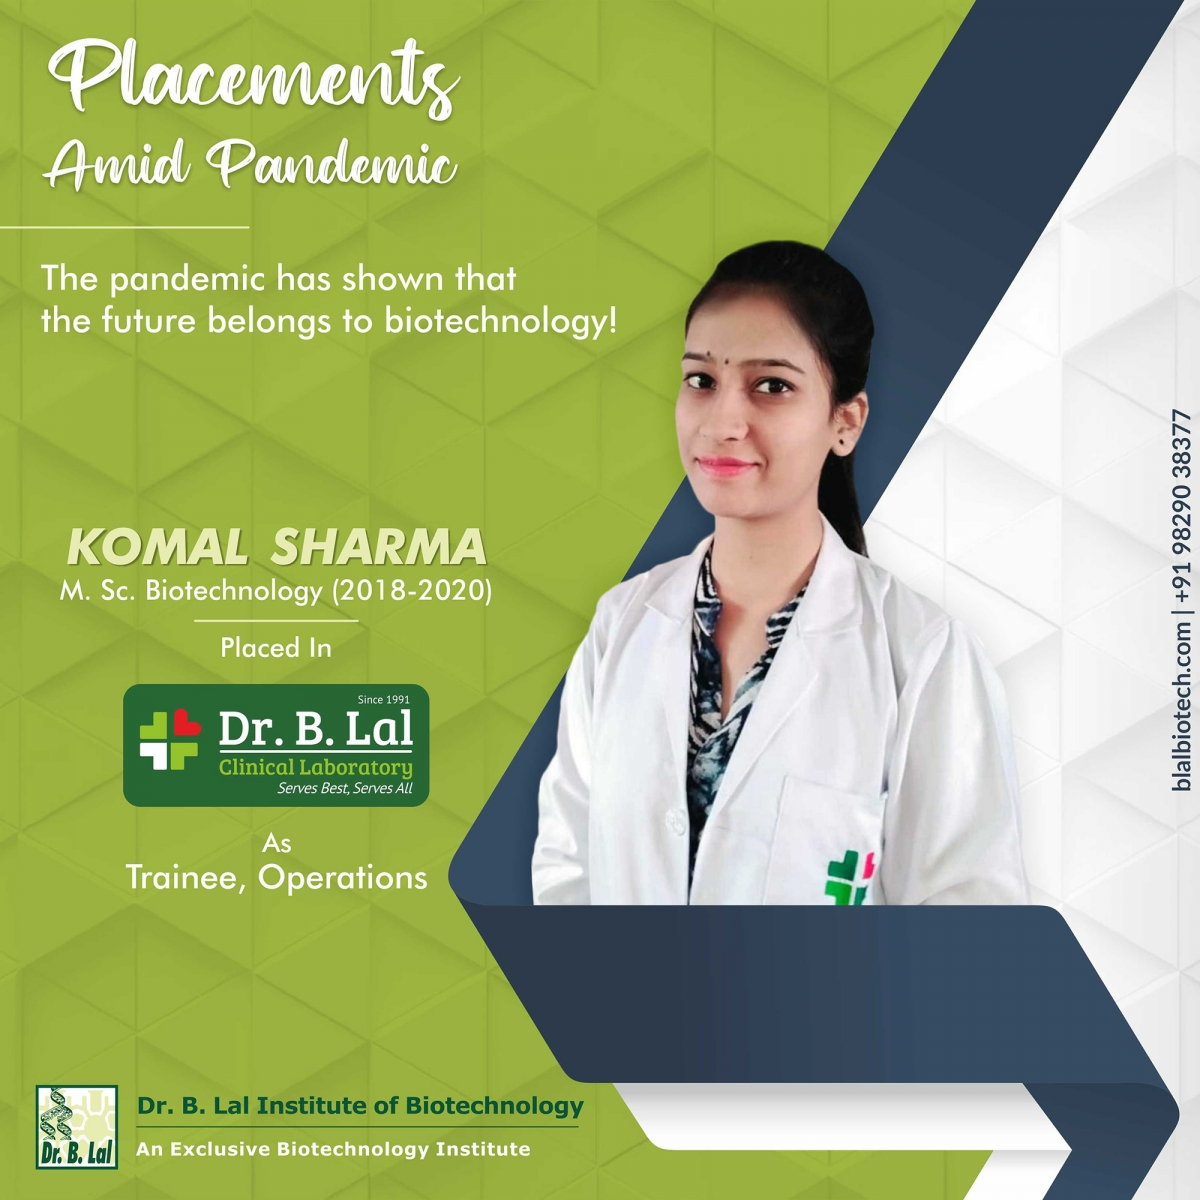 Komal Sharma | Placements Amid Pandemic | Dr. B. Lal Institute of Biotechnology